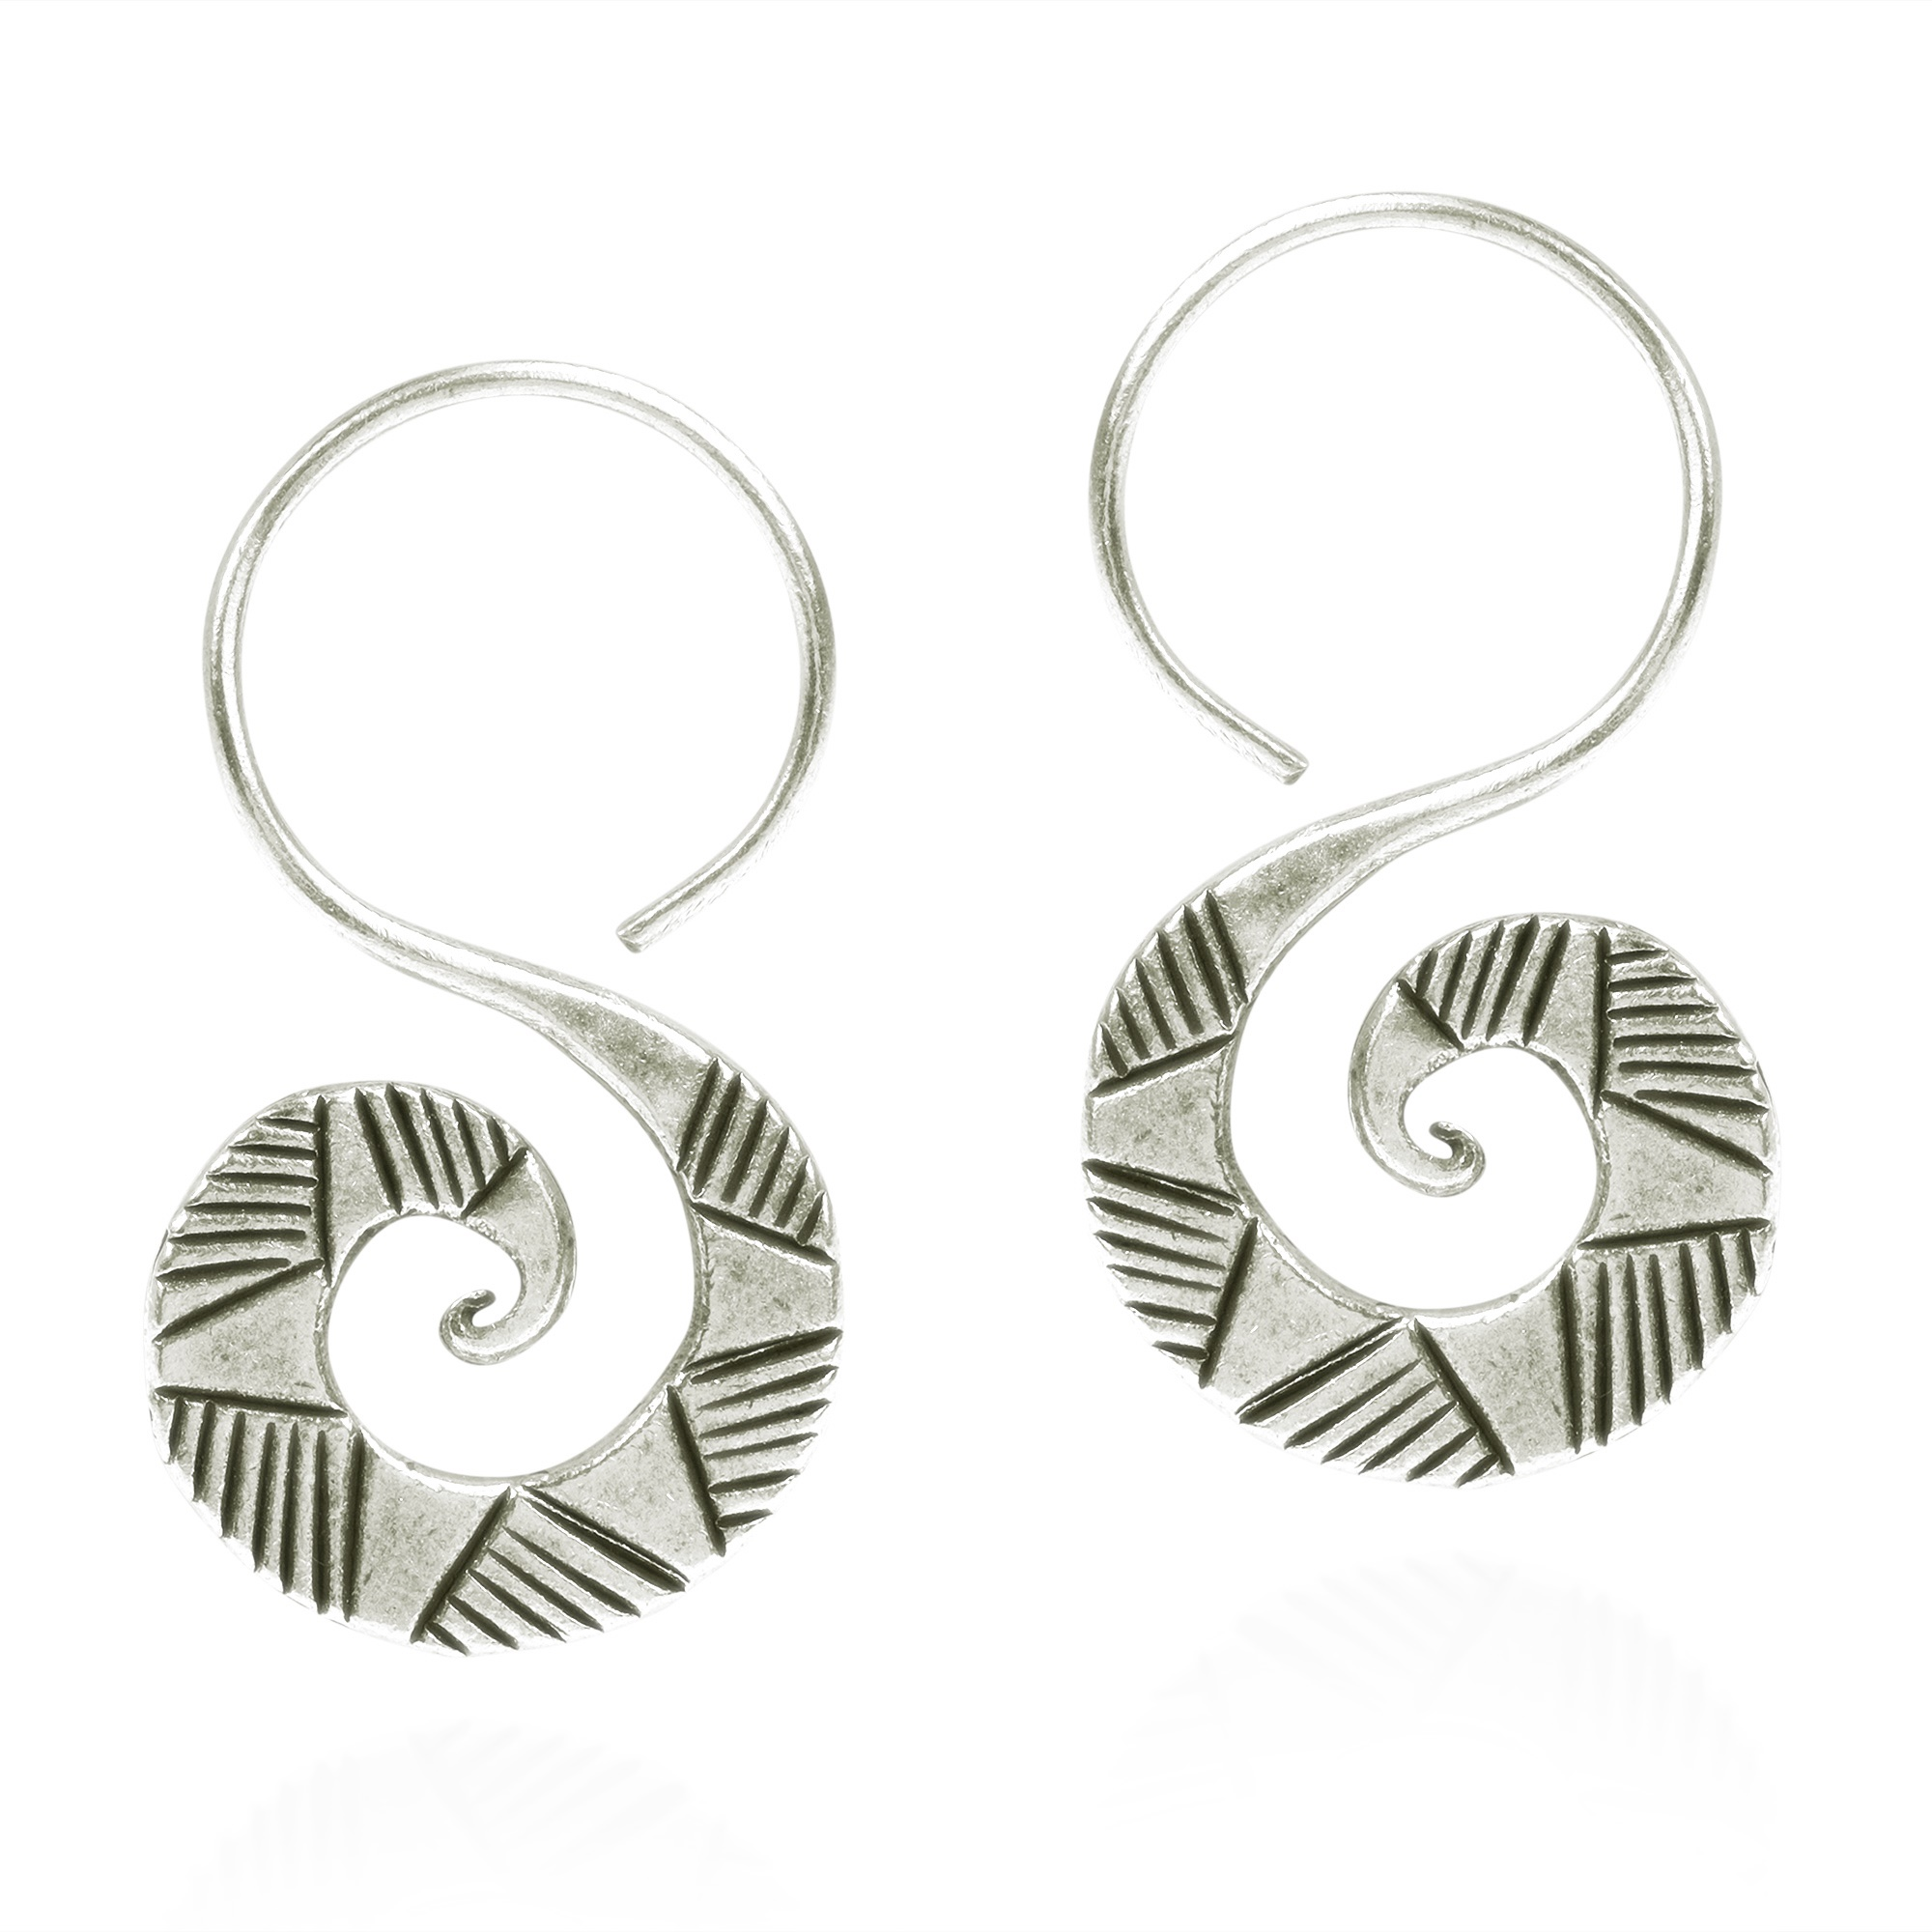 These Earrings By The Yao Hill Tribe Enthralls With Uniqueness Of Artistry Tribal Graphics And Shapes Were Carved Hand On Pure Silver Metal